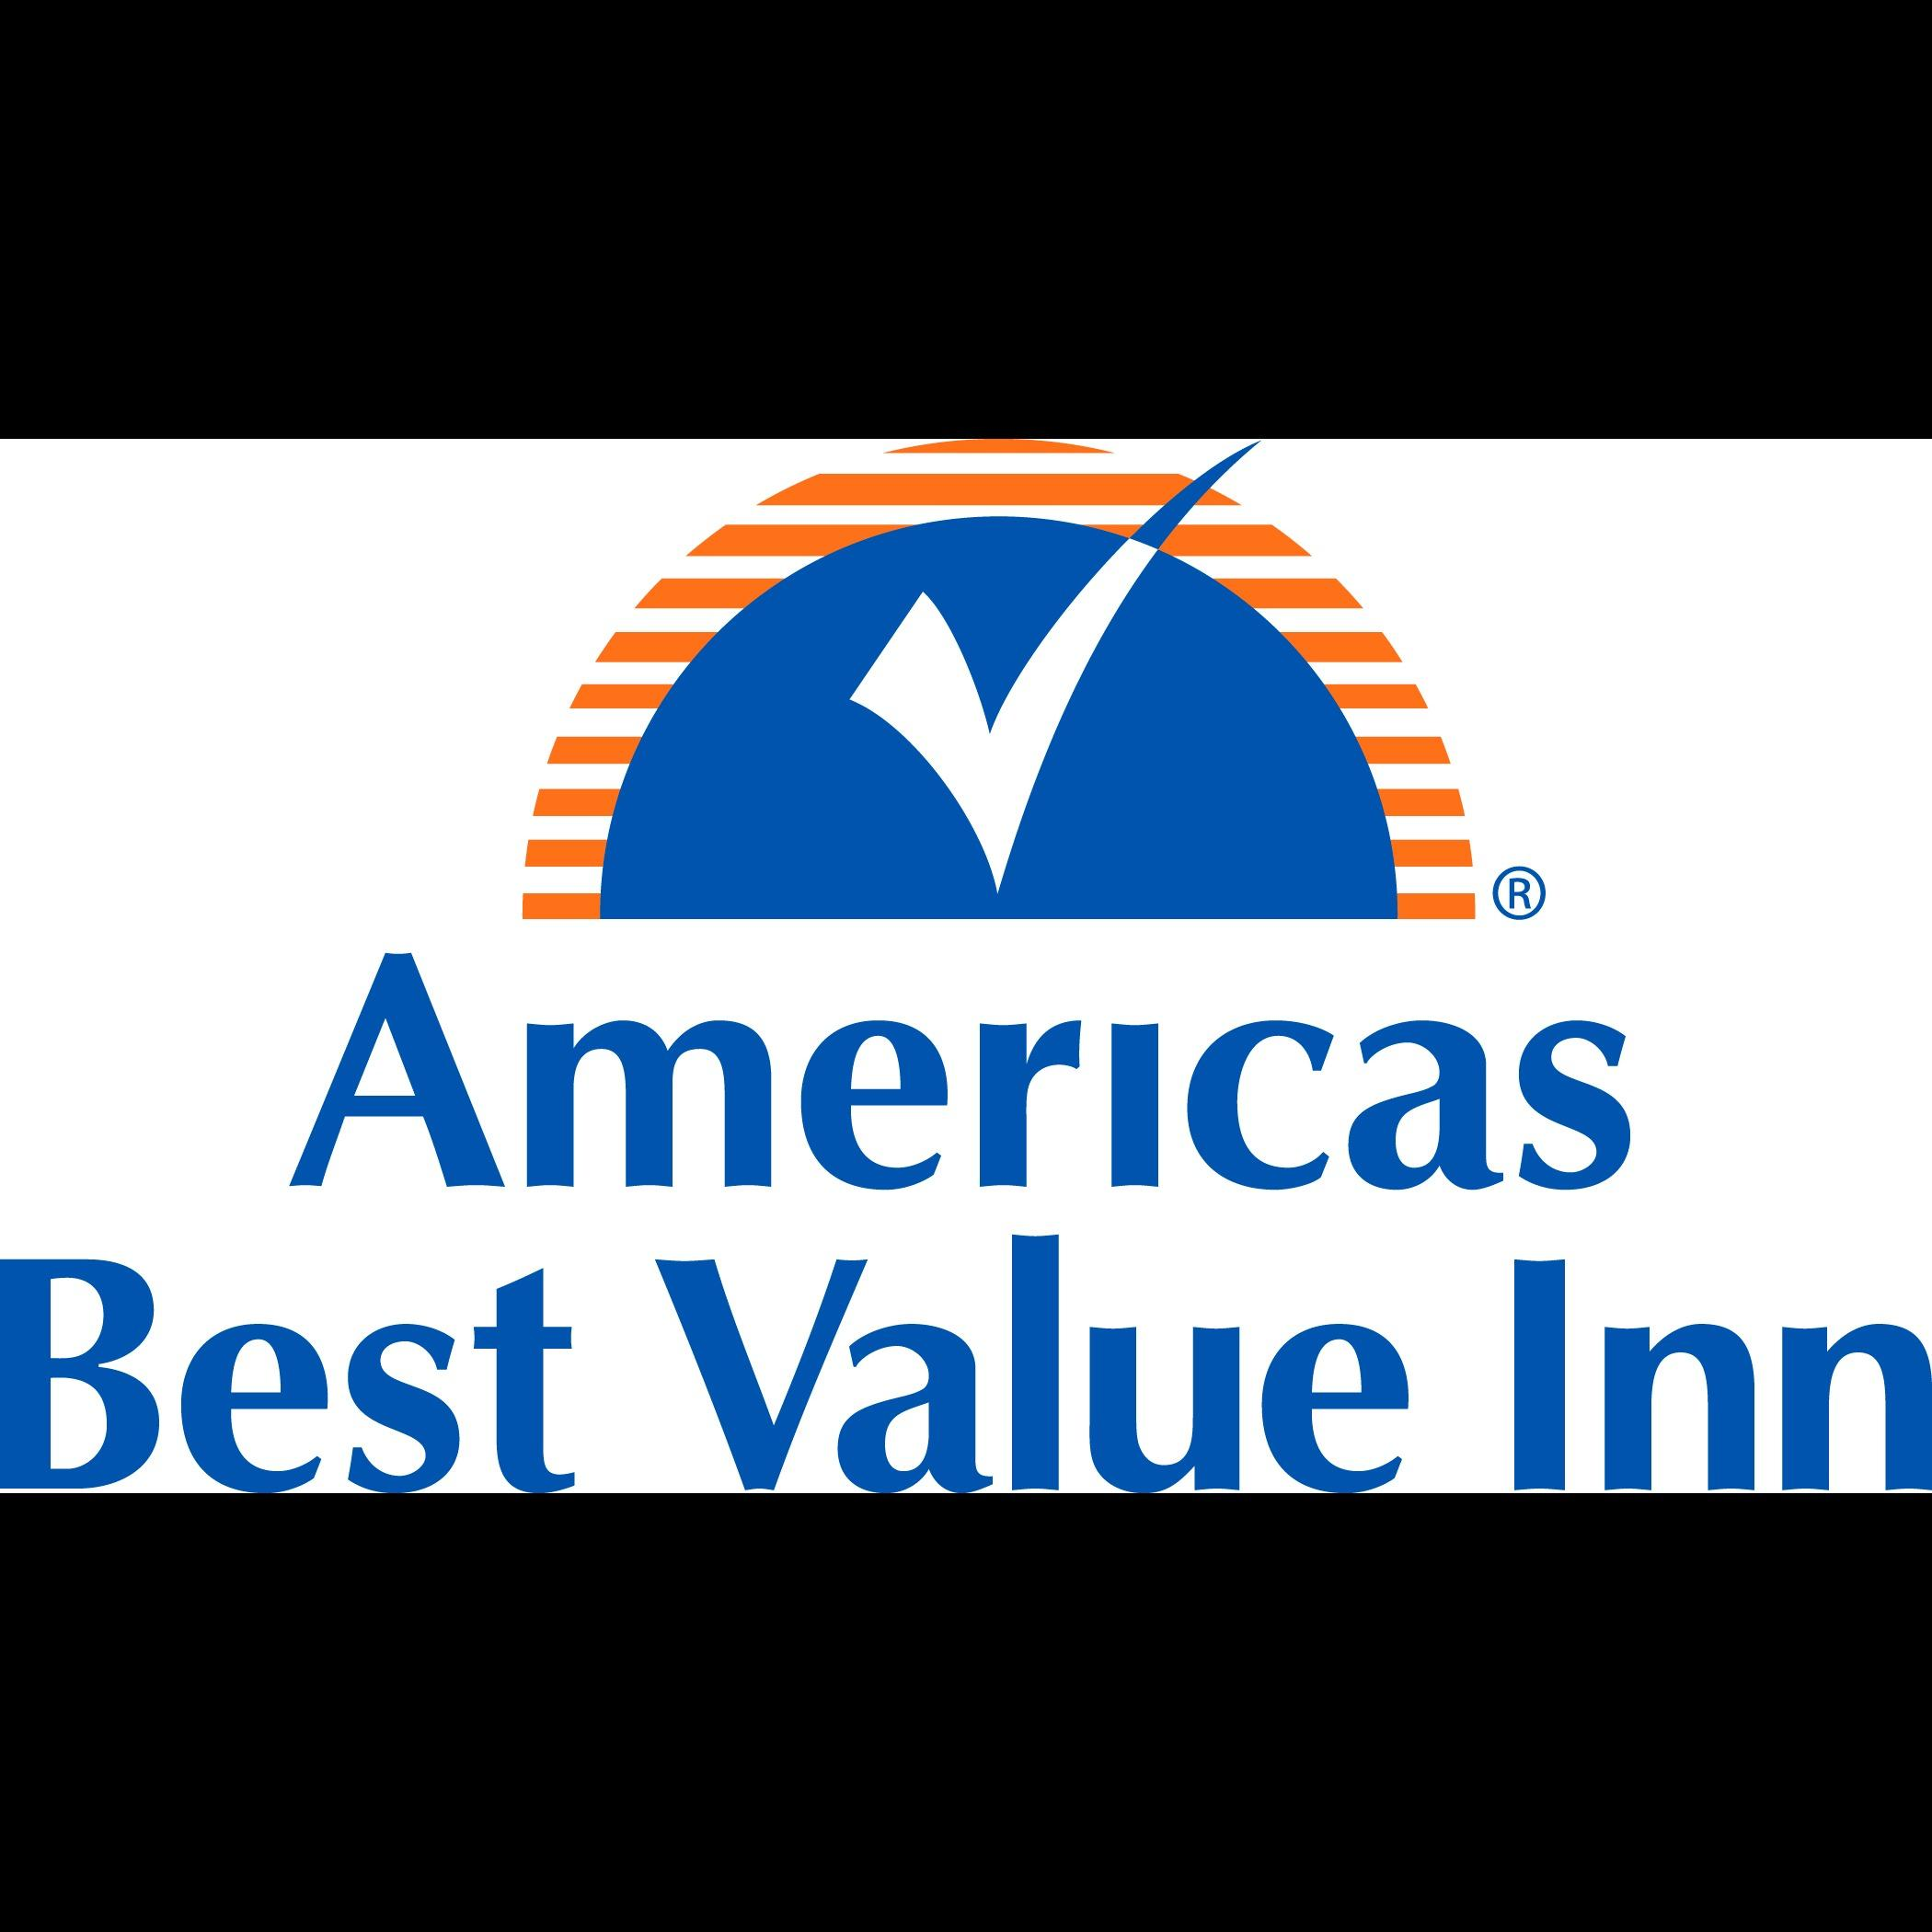 Americas Best Value Inn - Manchester - Manchester, CT - Hotels & Motels